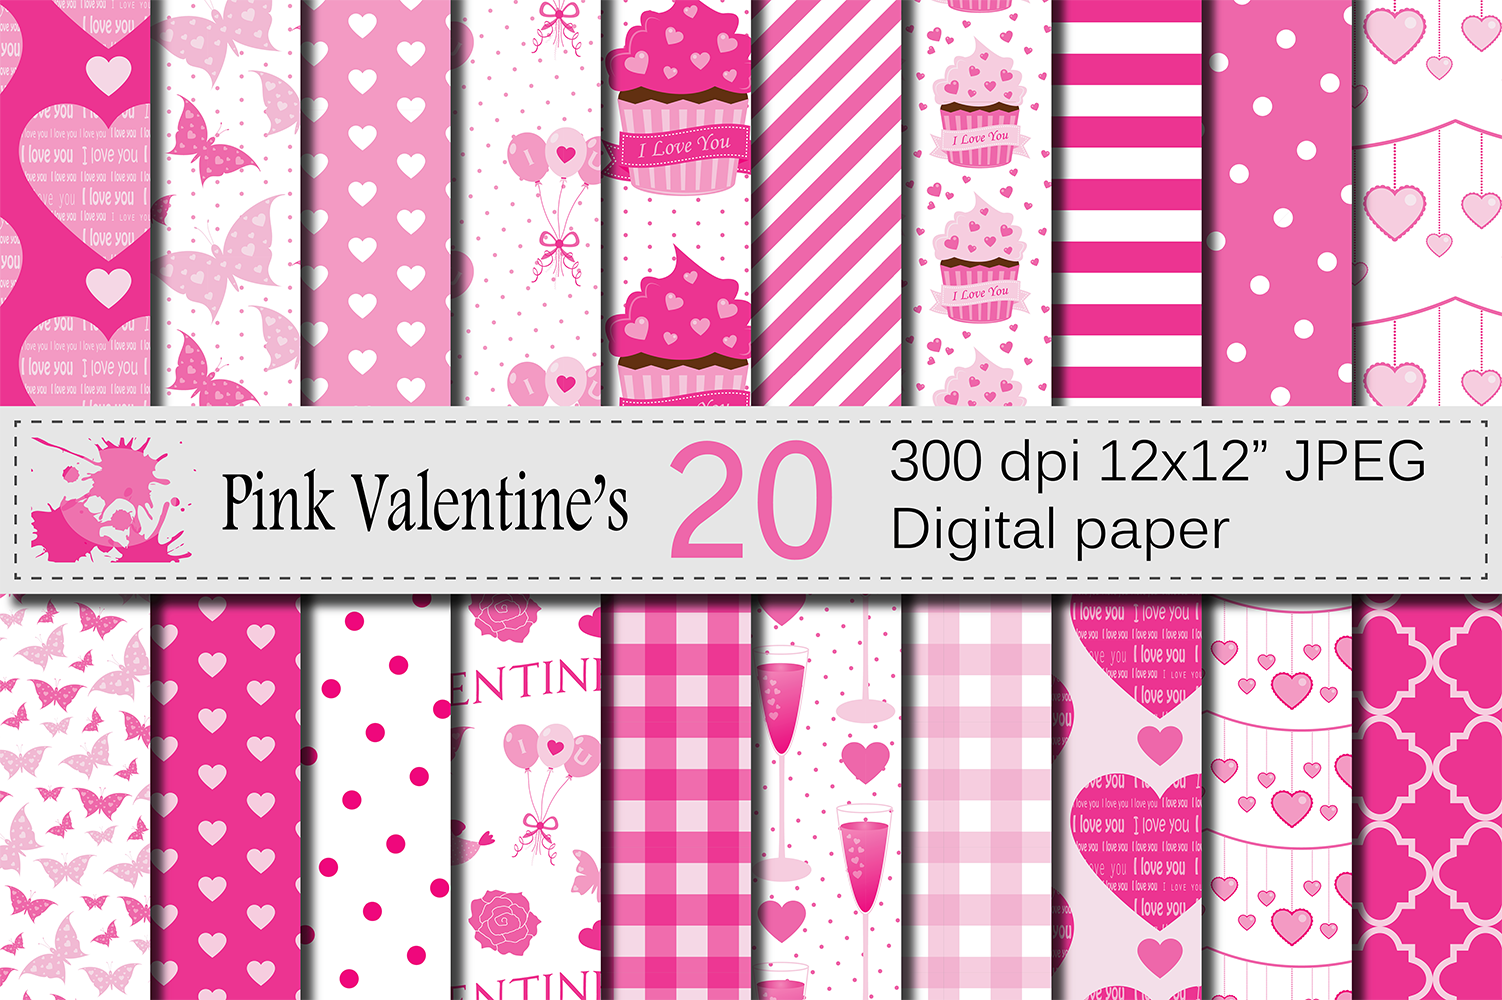 Pink Valentine`s Day Digital Paper Pack with Hearts, Cupcakes, Butterflies / Love Scrapbooking Papers / Valentine Backgrounds Graphic Backgrounds By VR Digital Design